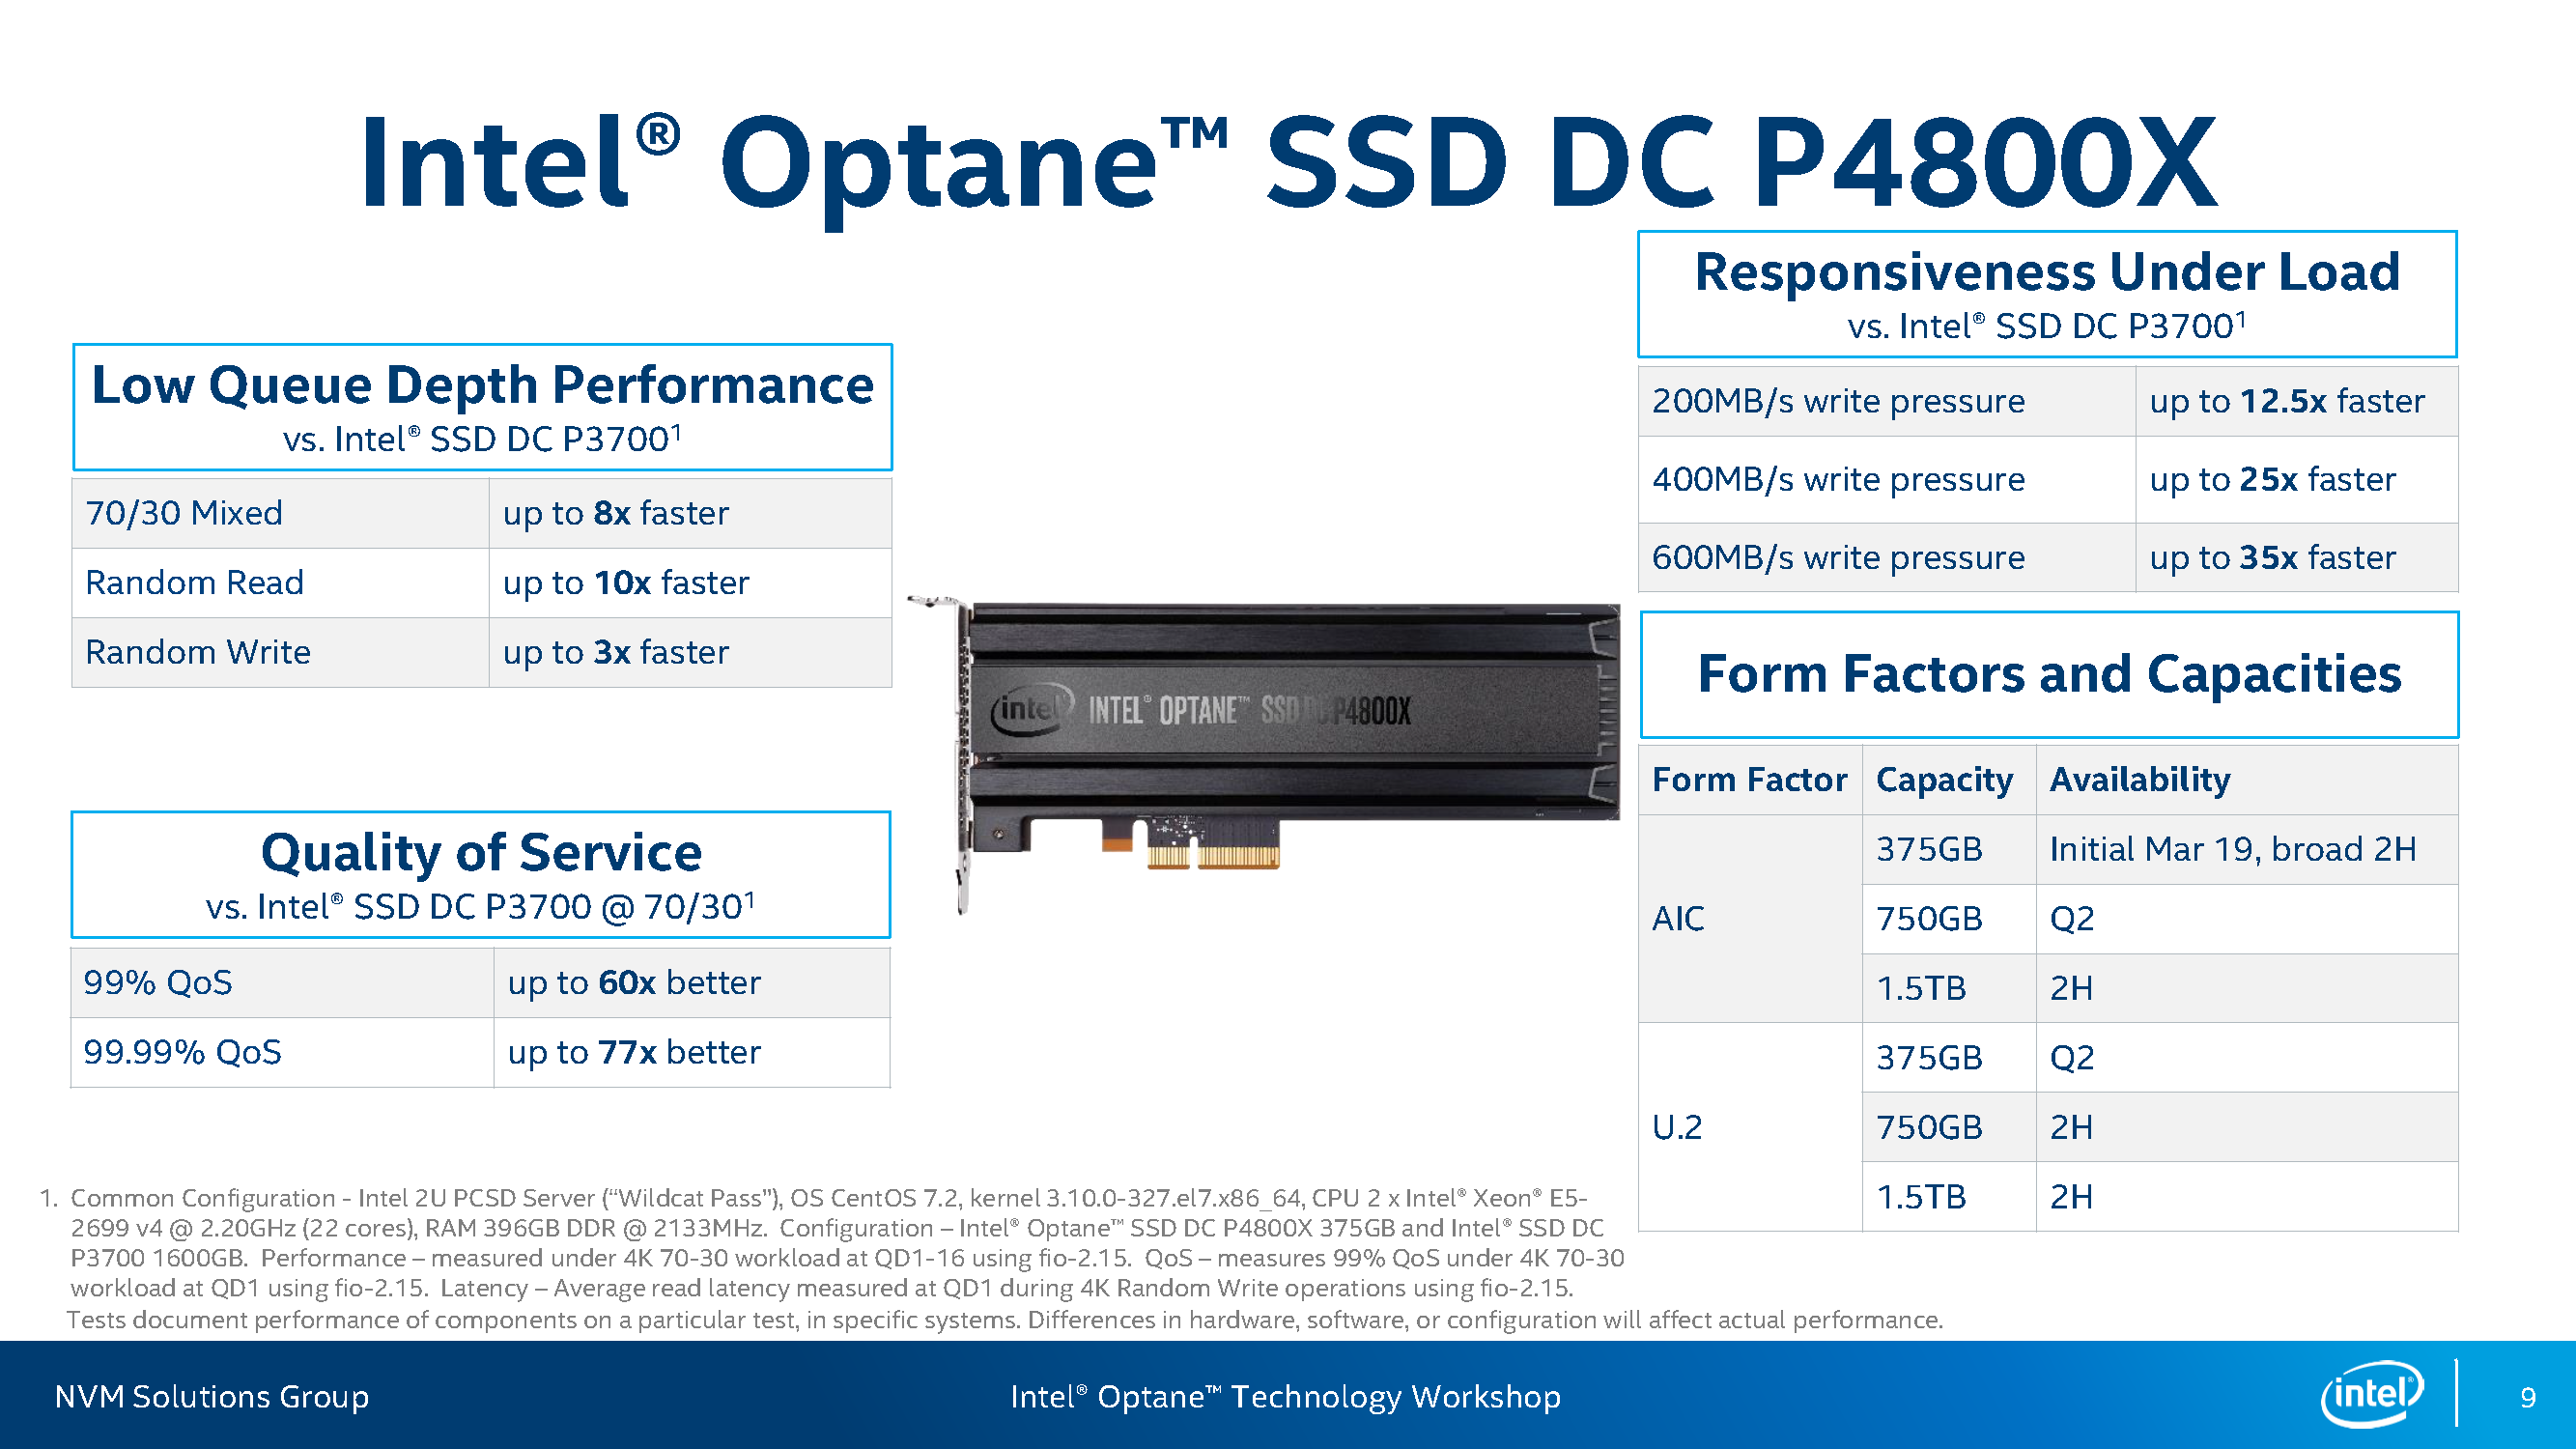 Intel Optane P4800X固態硬碟正式發售,最高1.5TB - XFastest - IntelR-OptaneTM-Technology-Workshop-Analyst-and-Press-Slides-3-15..._Page_09.png